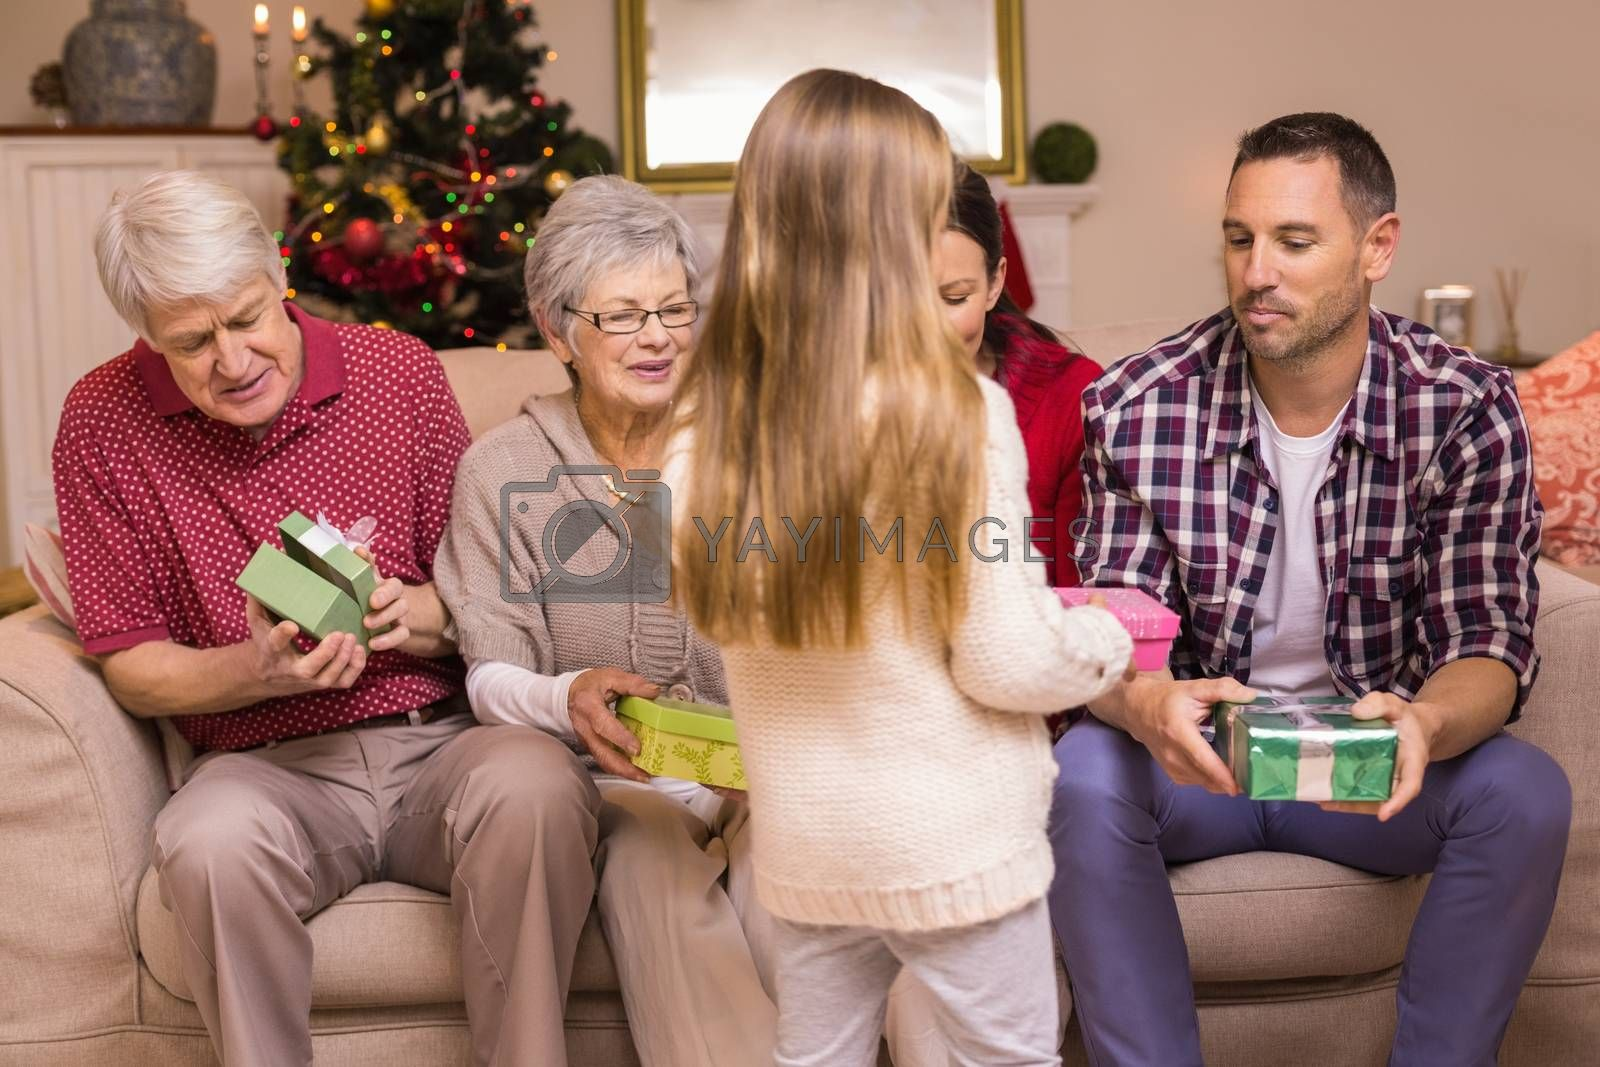 Cute little girl offering gift to her family at home in the living room